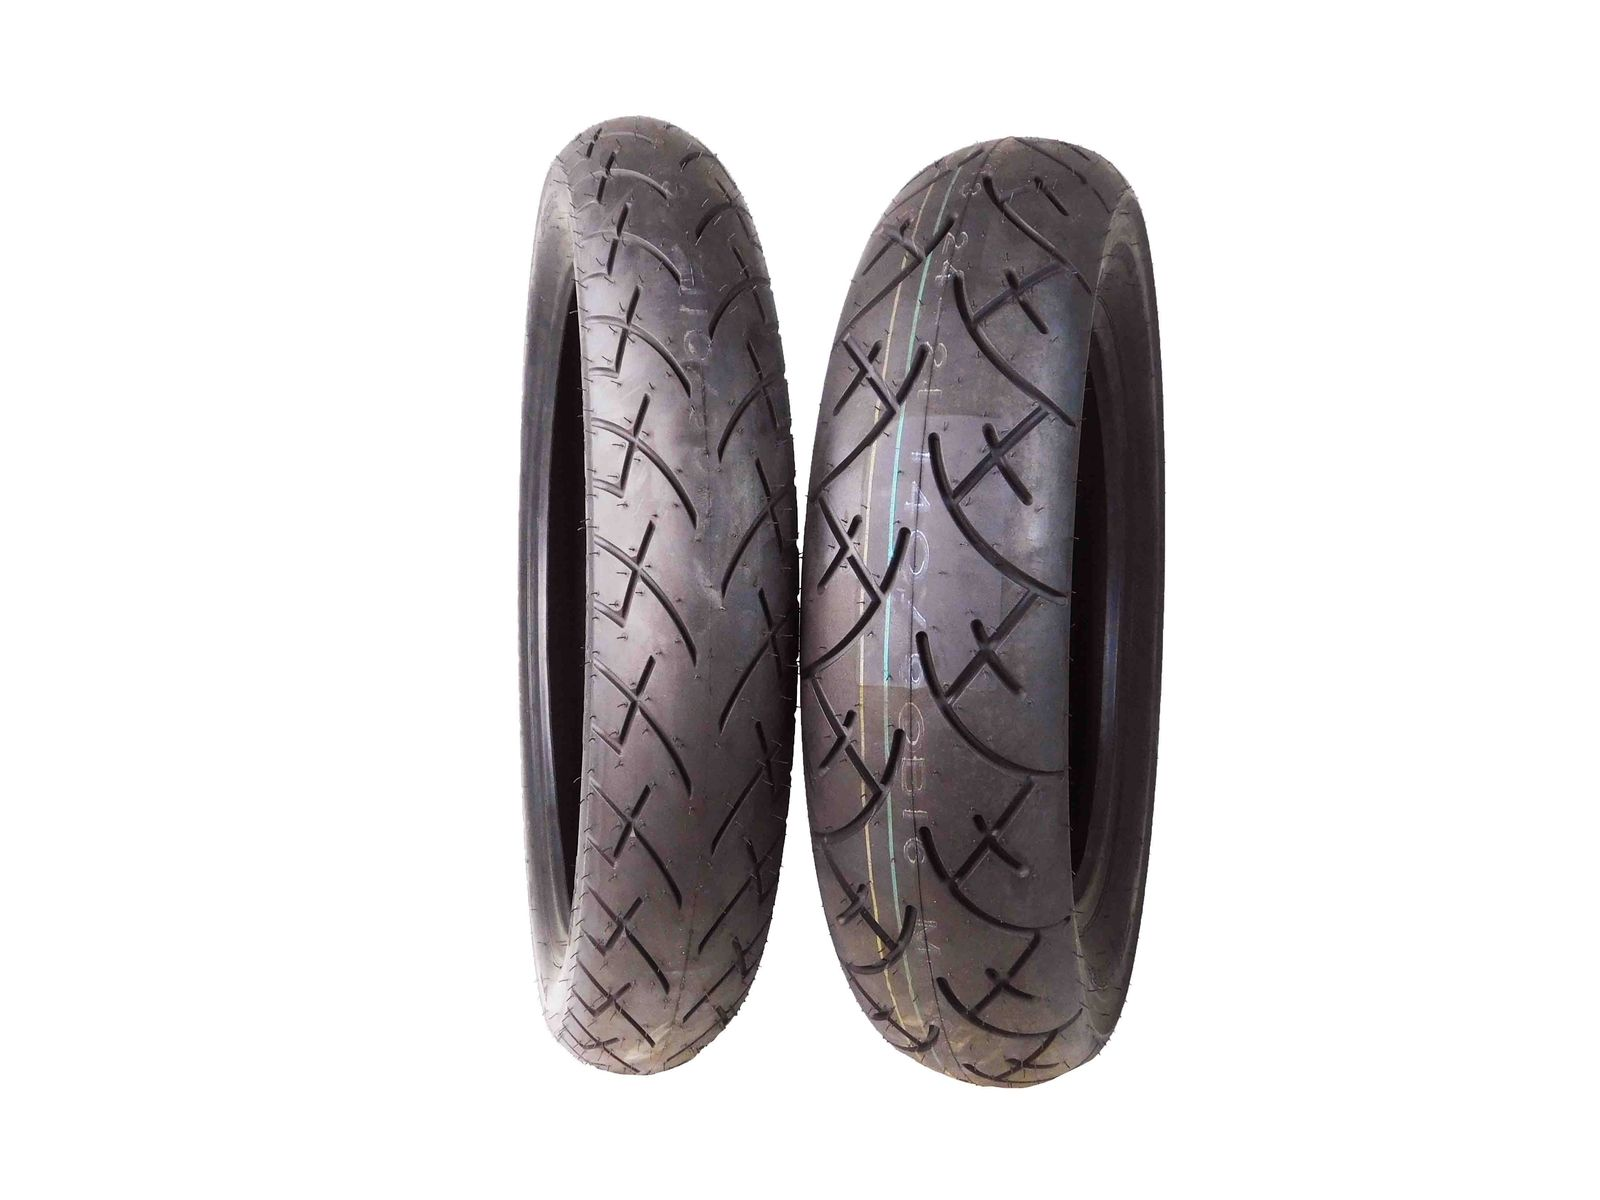 Full-Bore-110-90-19-Front-140-90-16-Rear-Set-Cruiser-Motorcycle-Tires-image-1